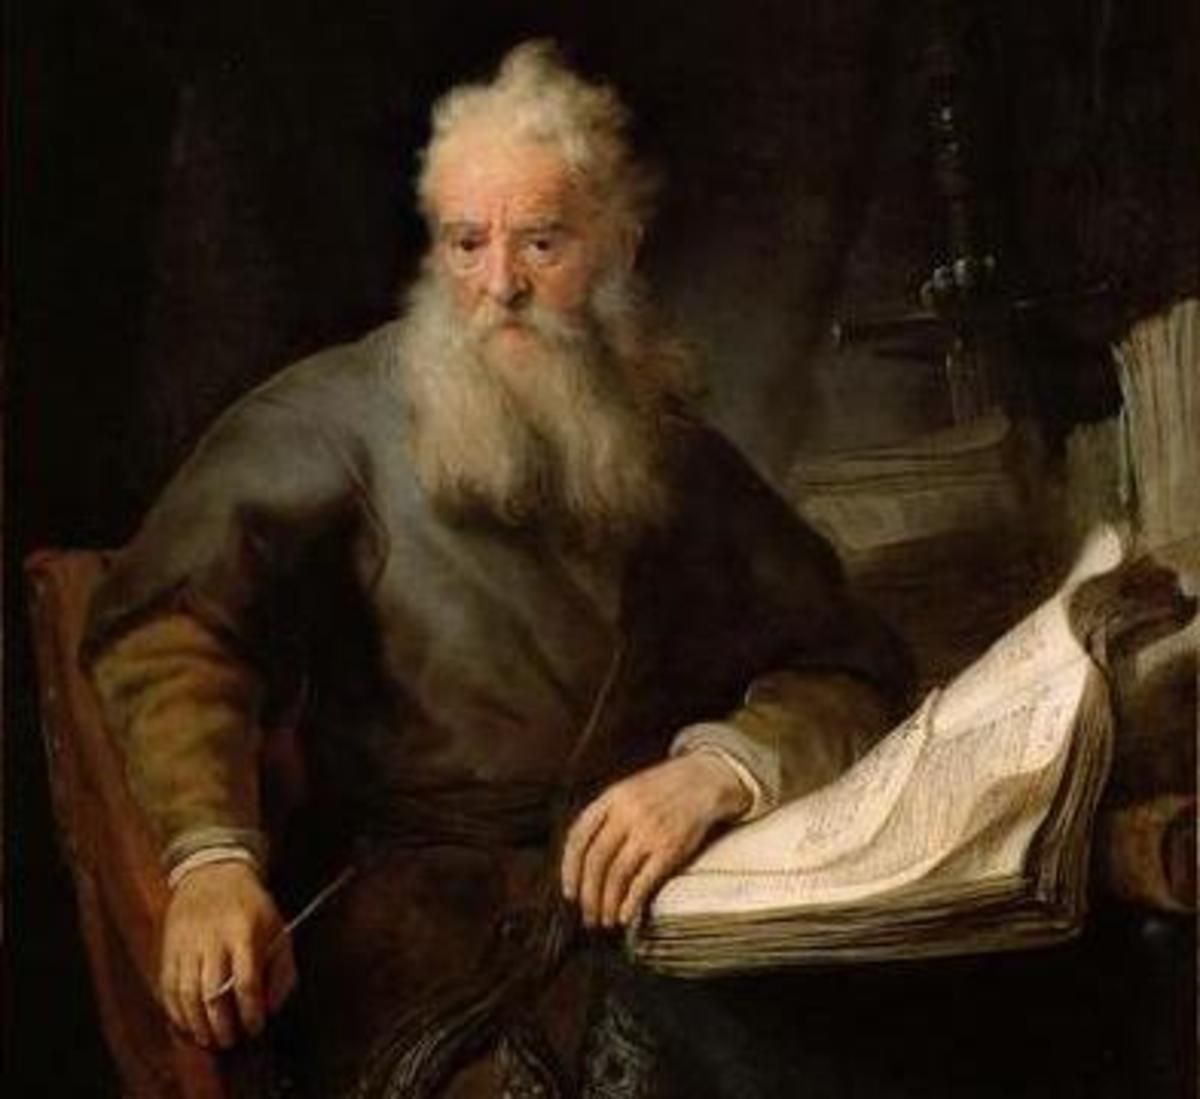 A detail of a painting of St. Paul by Rembrandt.